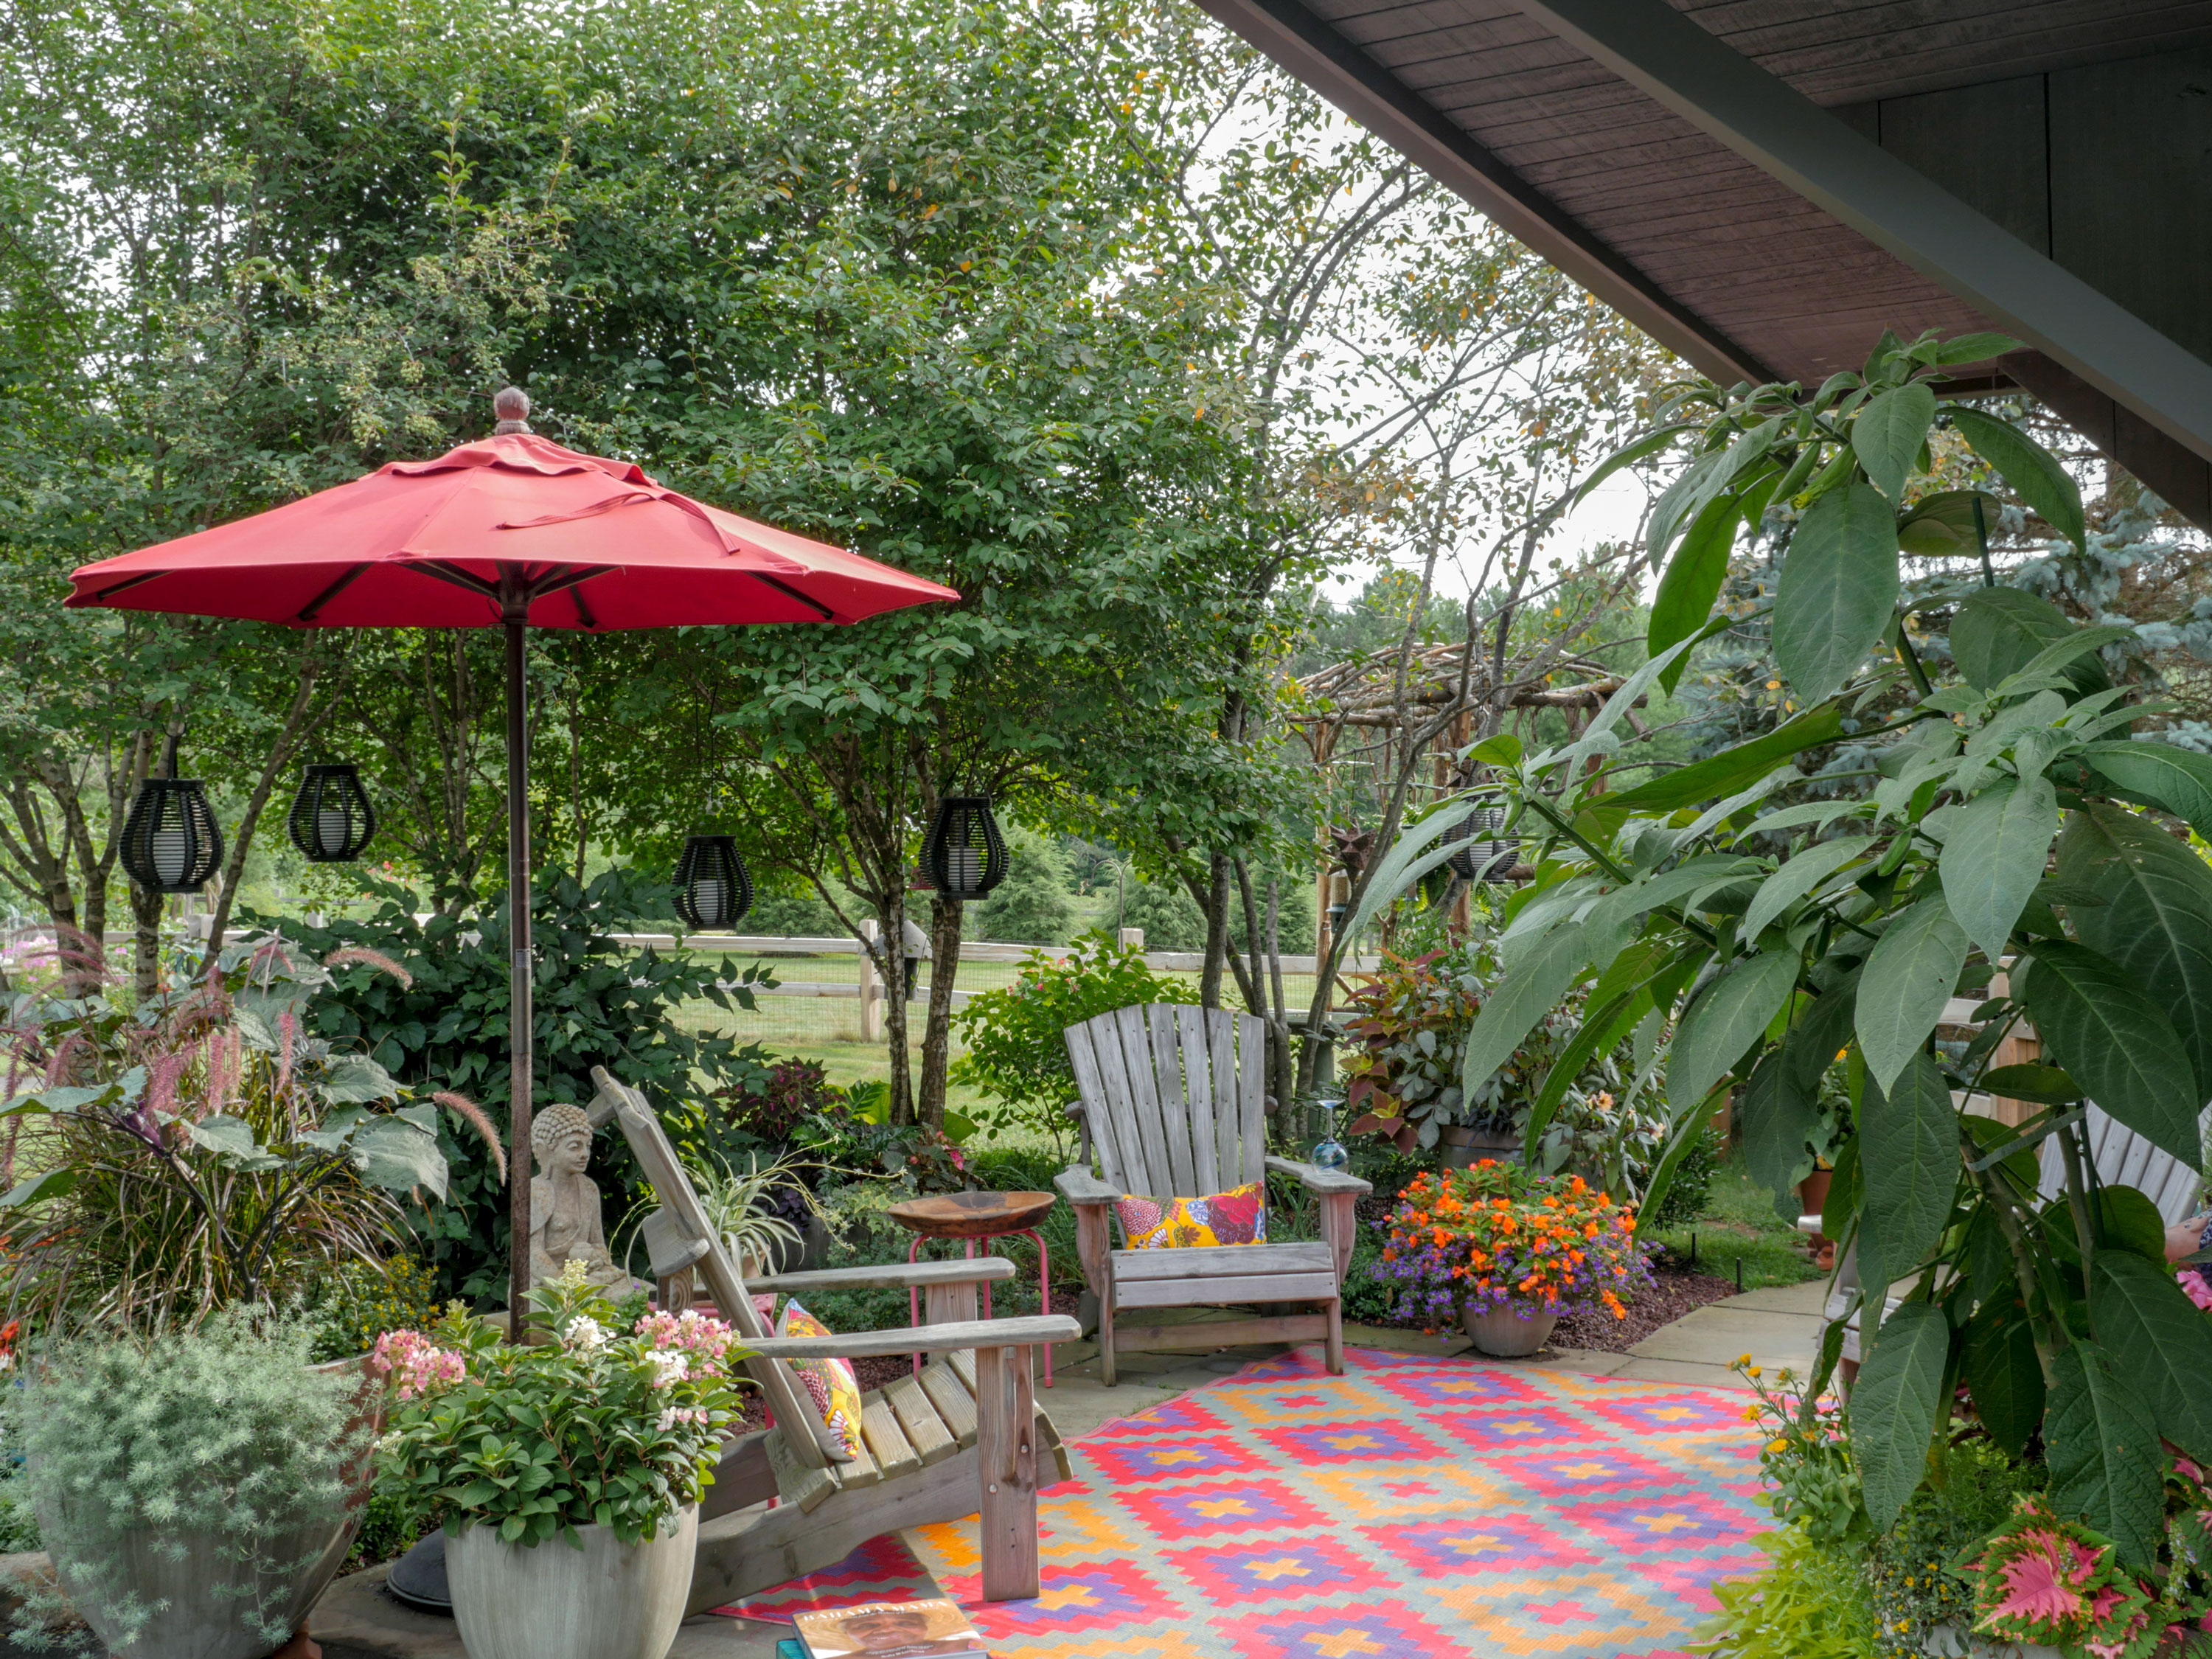 Patio designed with potted plants